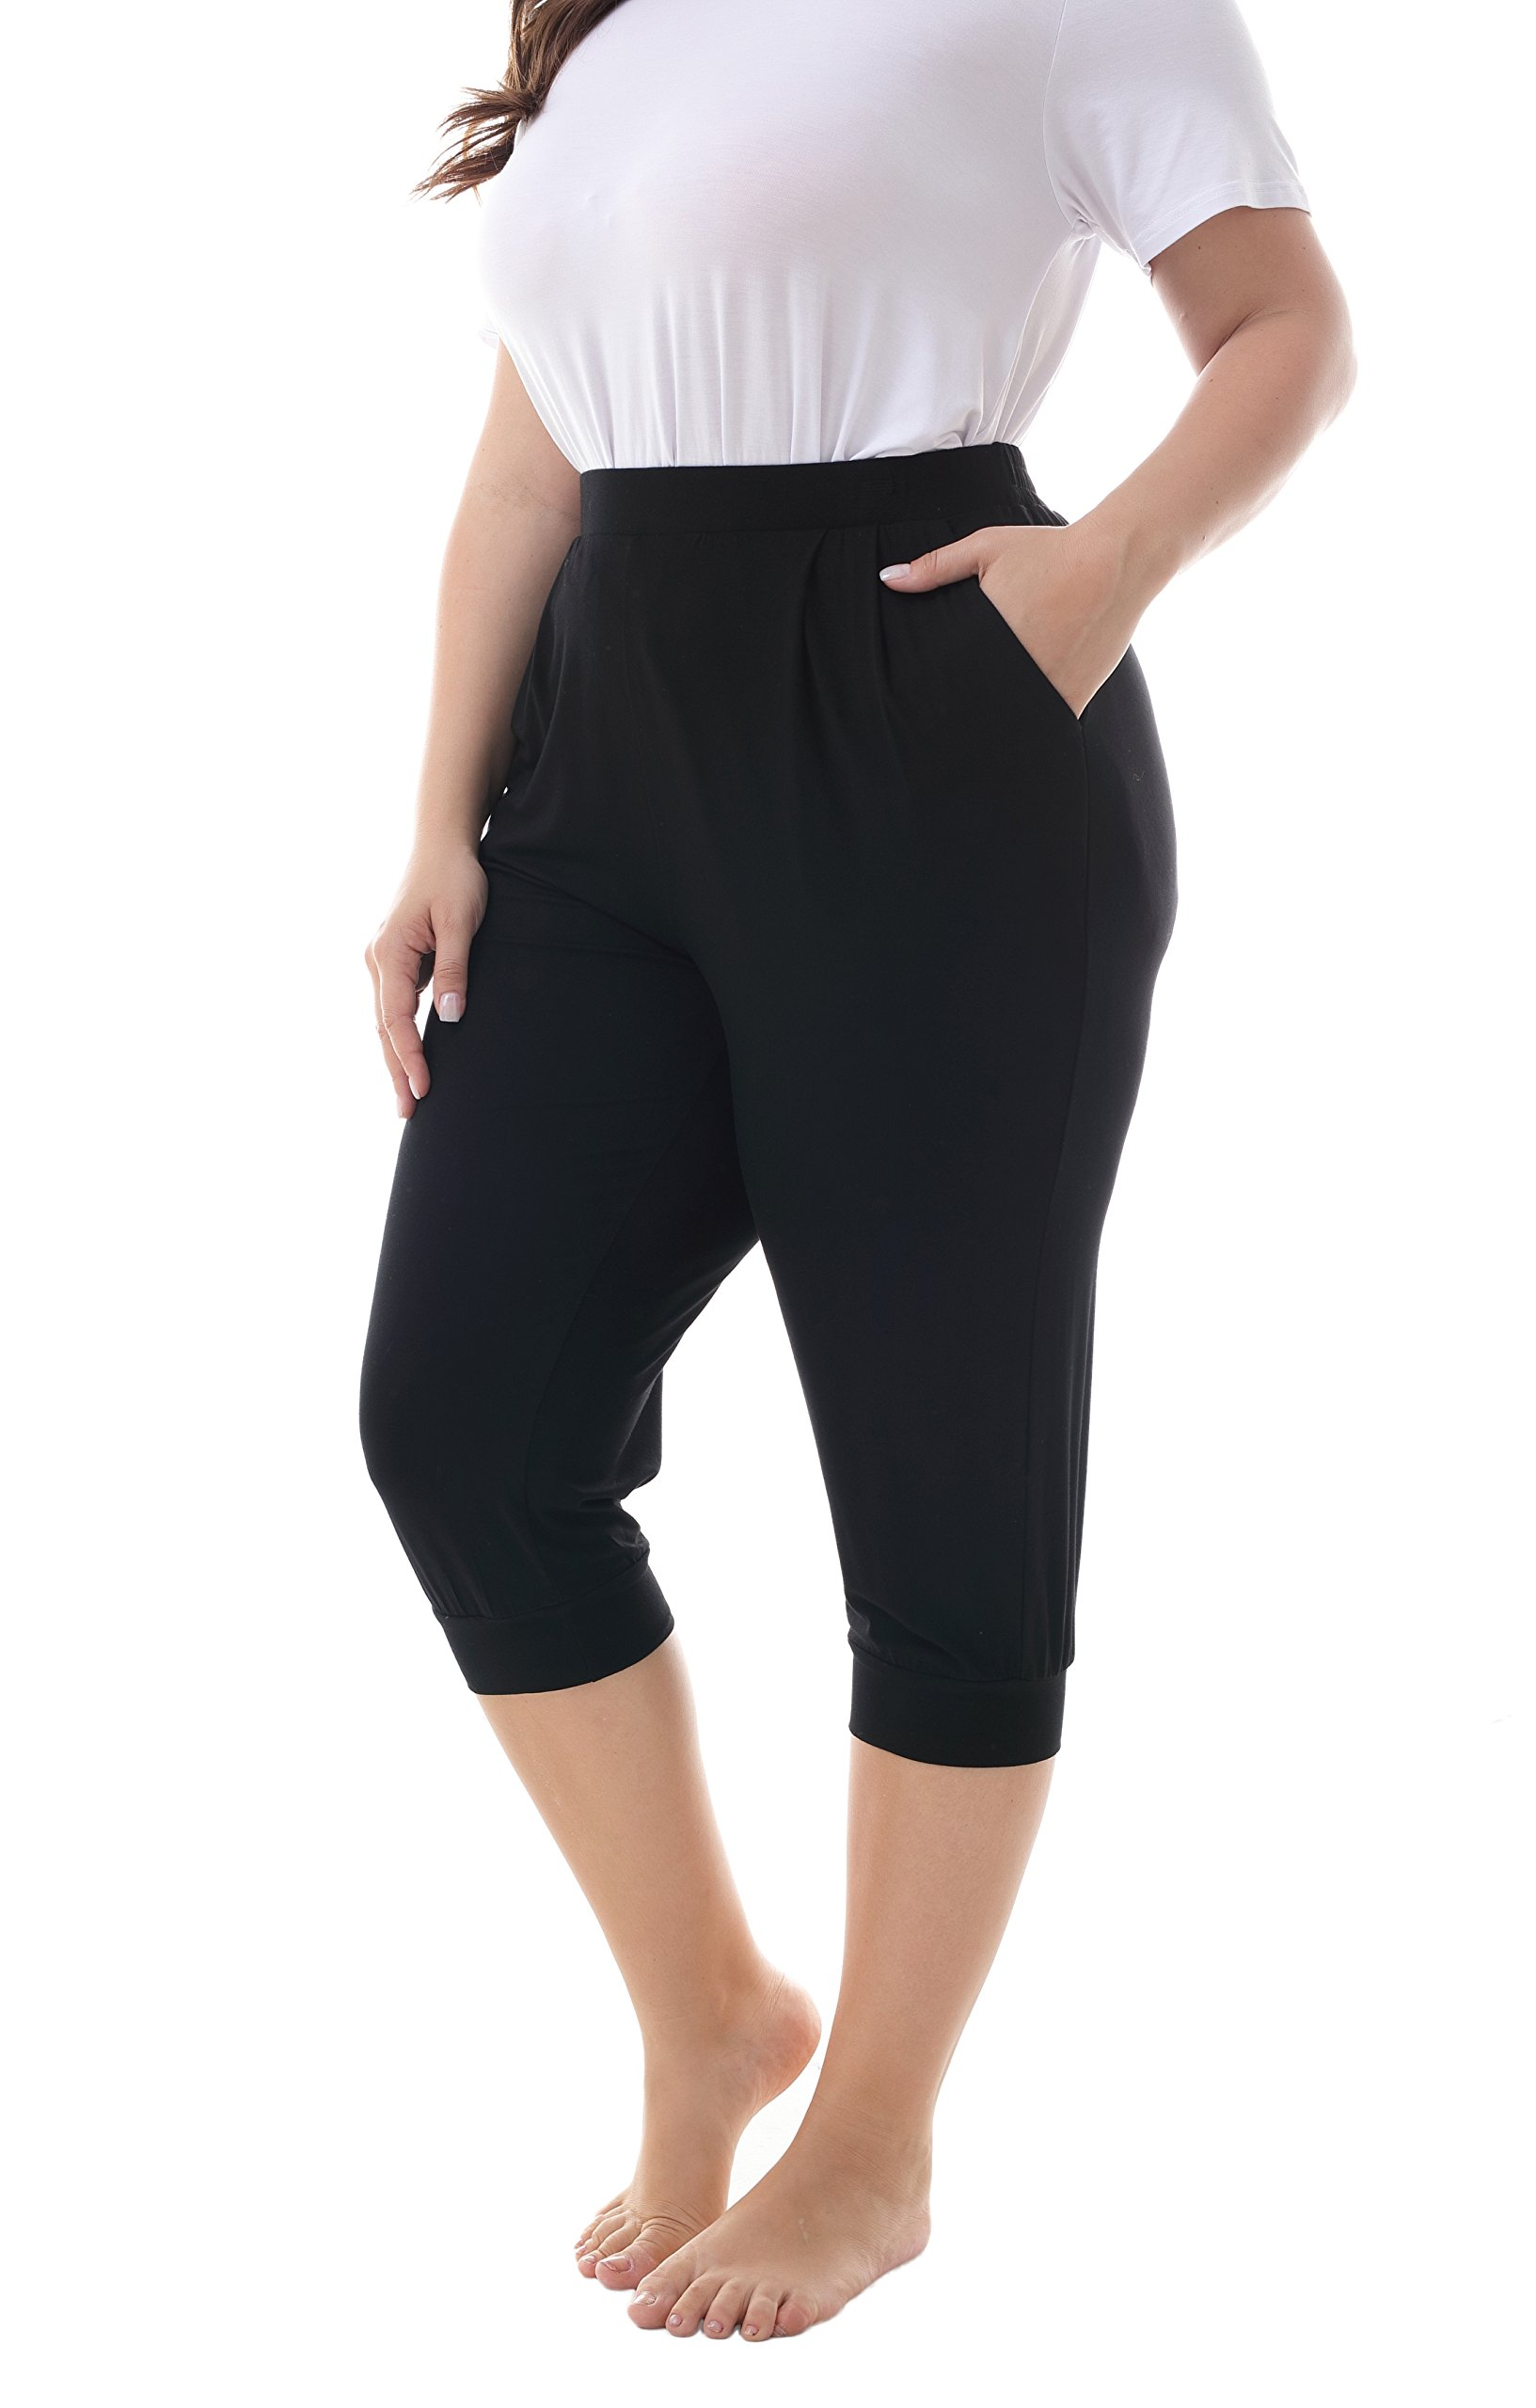 ZERDOCEAN Women's Plus Size Casual Stretchy Relaxed Lounge Capri Black 1X